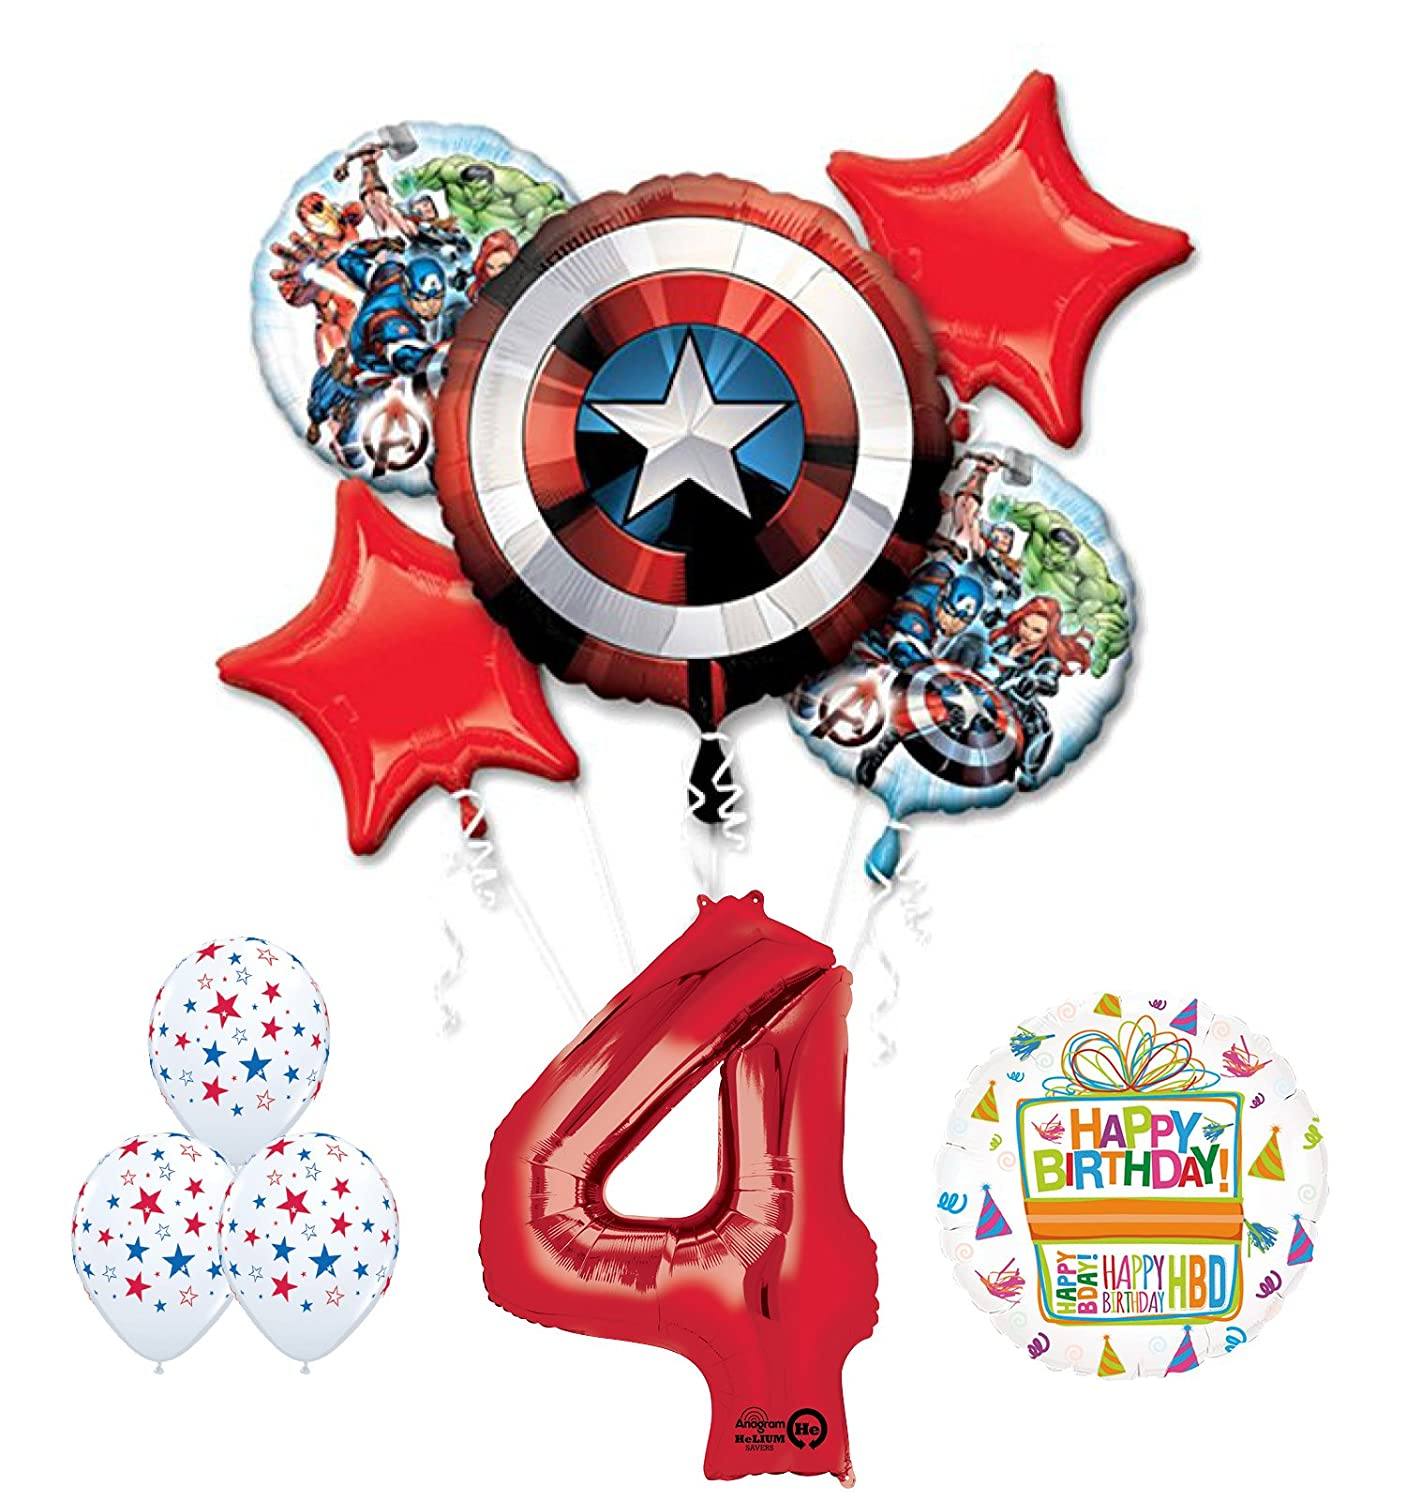 The Ultimate Construction 5th Birthday Party Supplies and Balloon Decorations